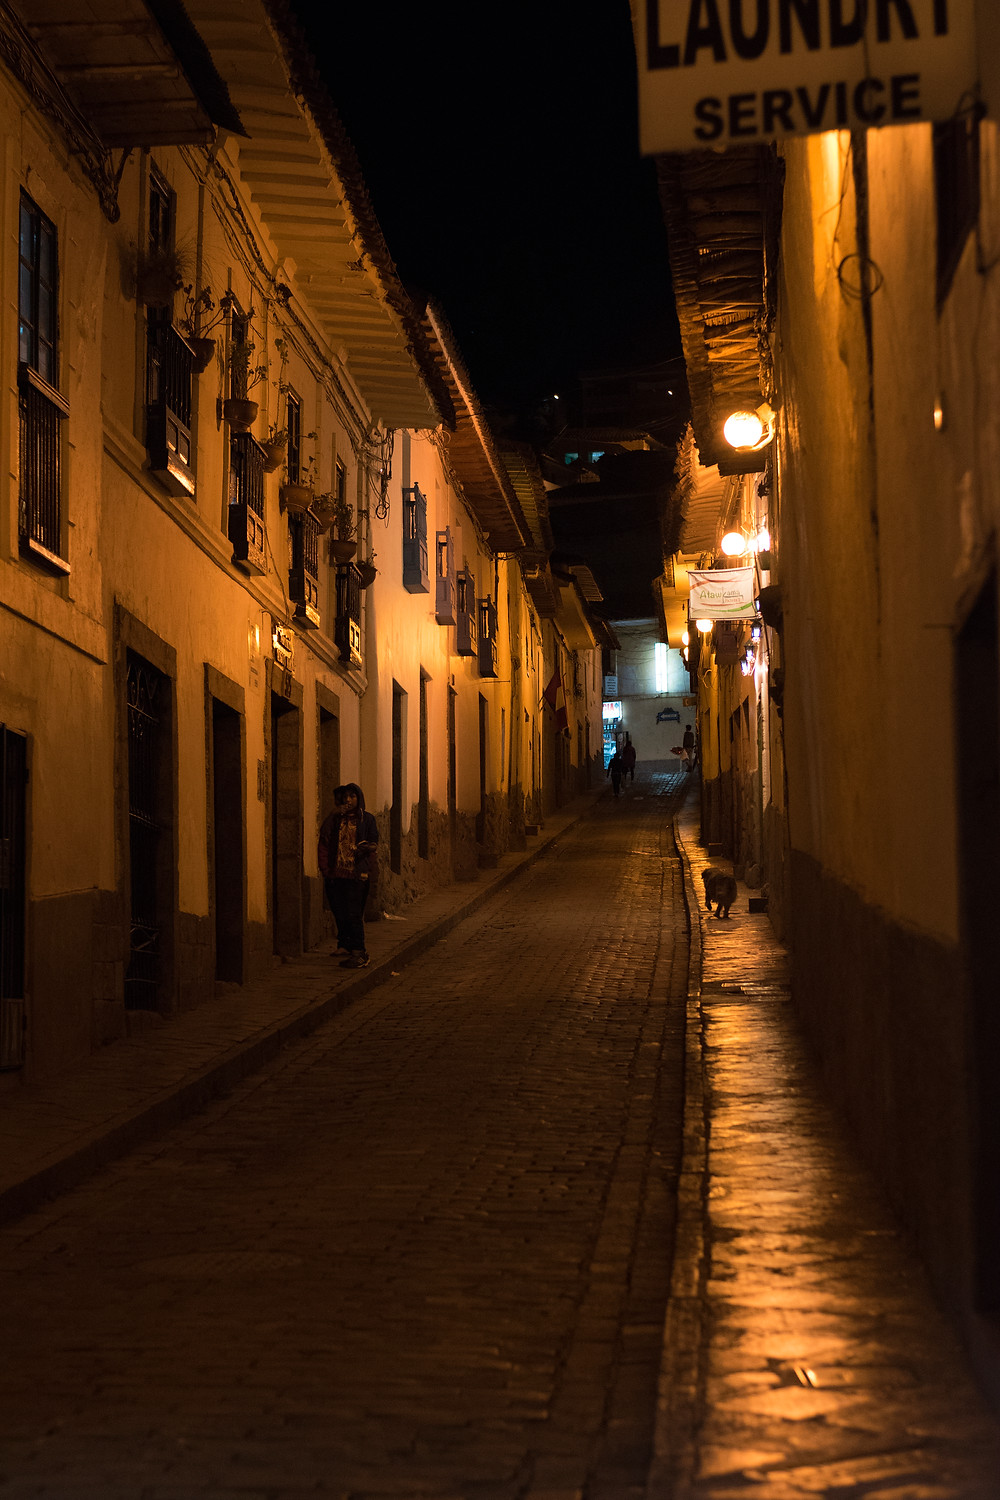 The streets of Cusco in the middle of the night